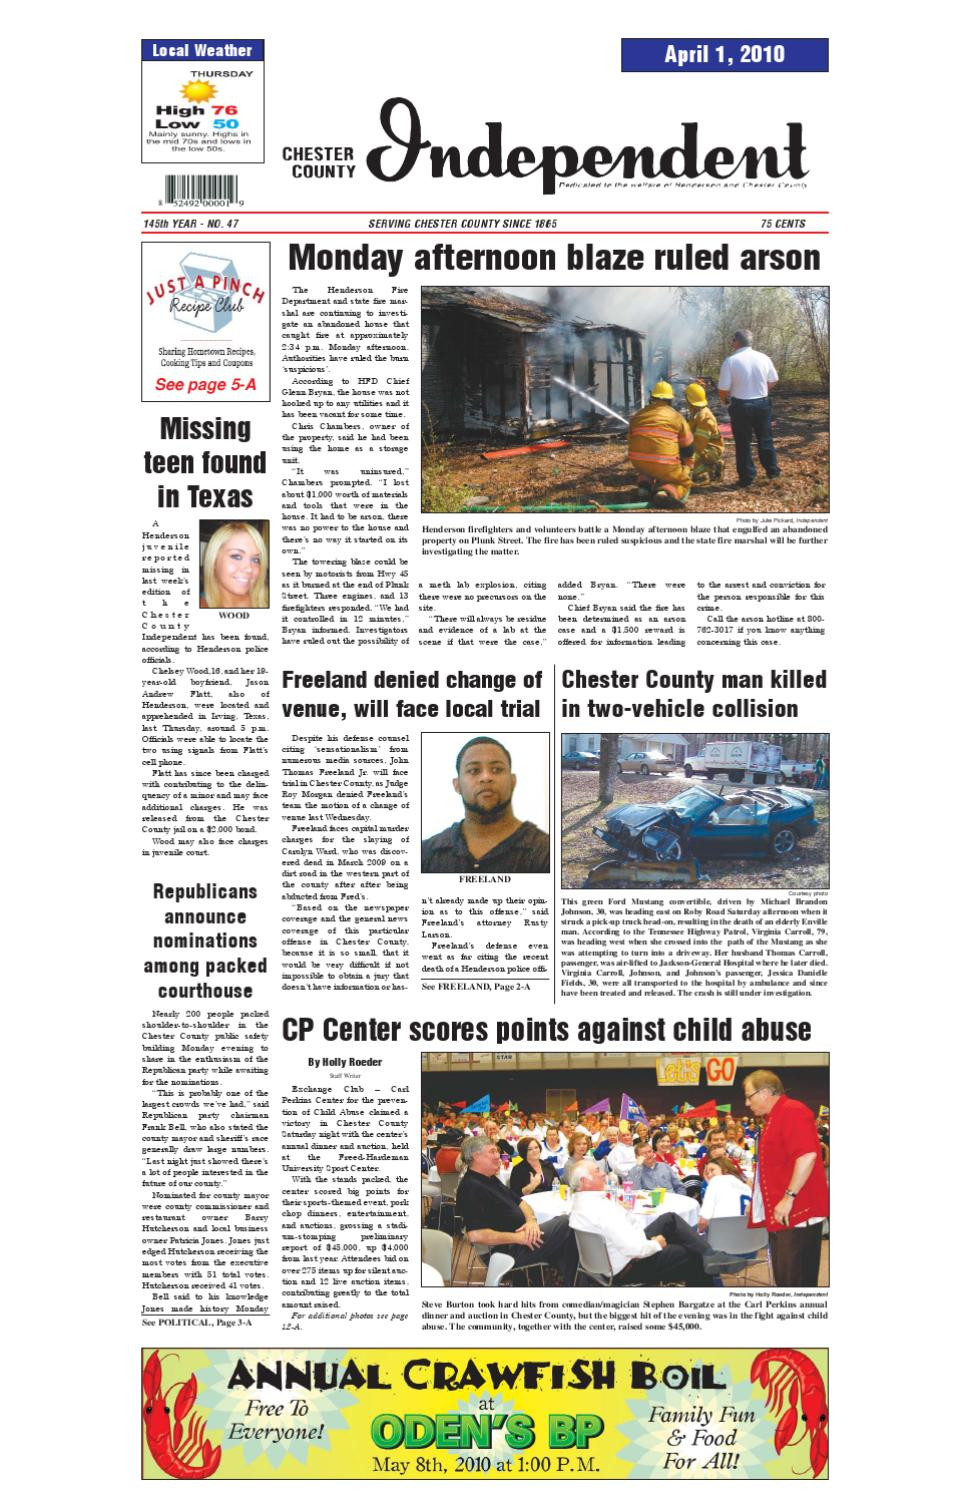 Tennessee chester county enville - Chester County Independent 04 01 10 By Chester County Independent Issuu